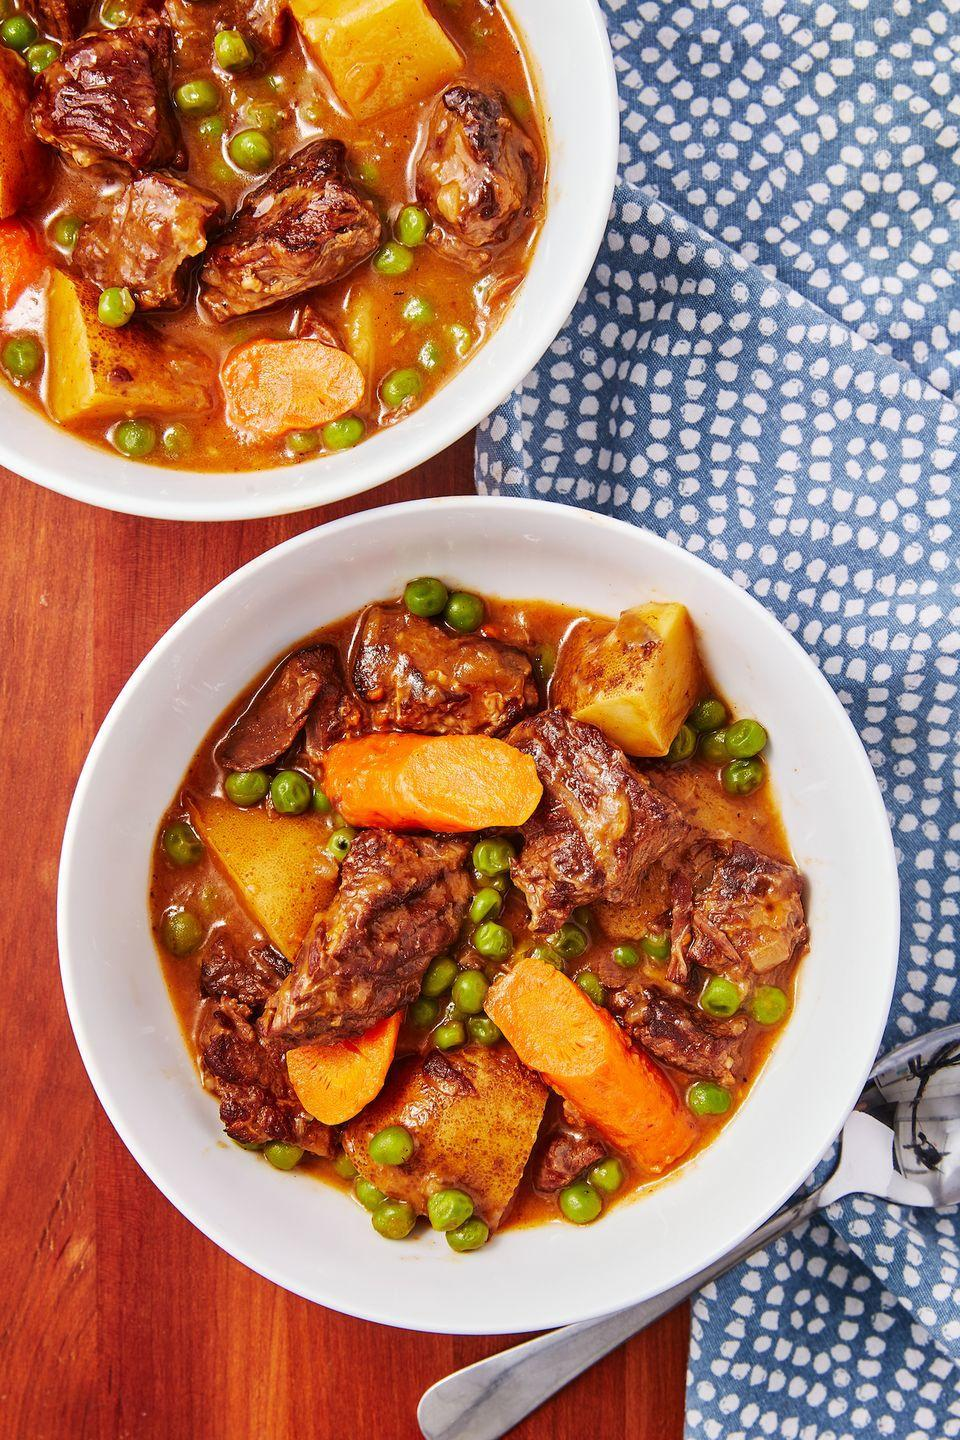 """<p>Your instant pot tenderizes meat in minutes.</p><p>Get the recipe from <a href=""""https://www.delish.com/cooking/recipe-ideas/a29787742/instant-pot-beef-stew-recipe/"""" rel=""""nofollow noopener"""" target=""""_blank"""" data-ylk=""""slk:Delish"""" class=""""link rapid-noclick-resp"""">Delish</a>.</p>"""